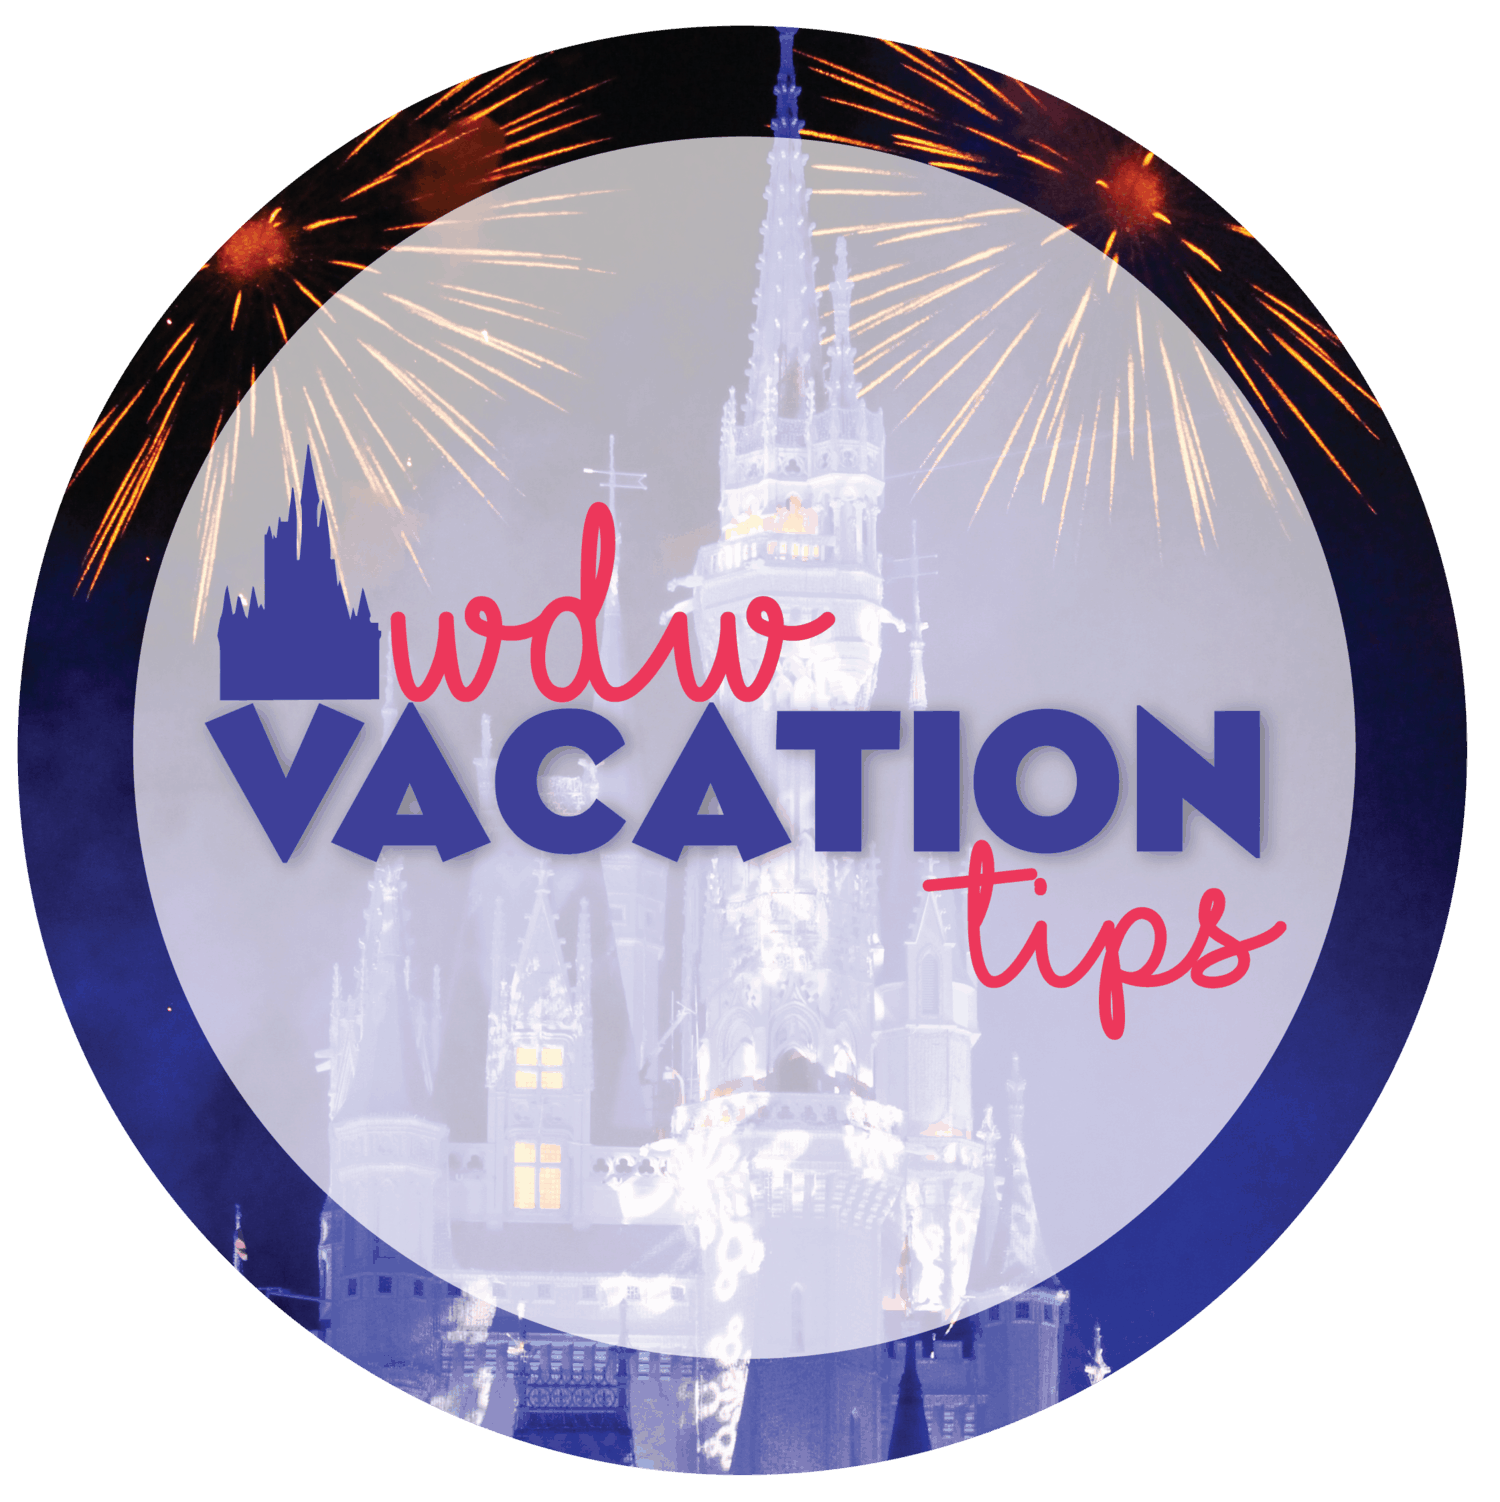 About WDW Vacation Tips